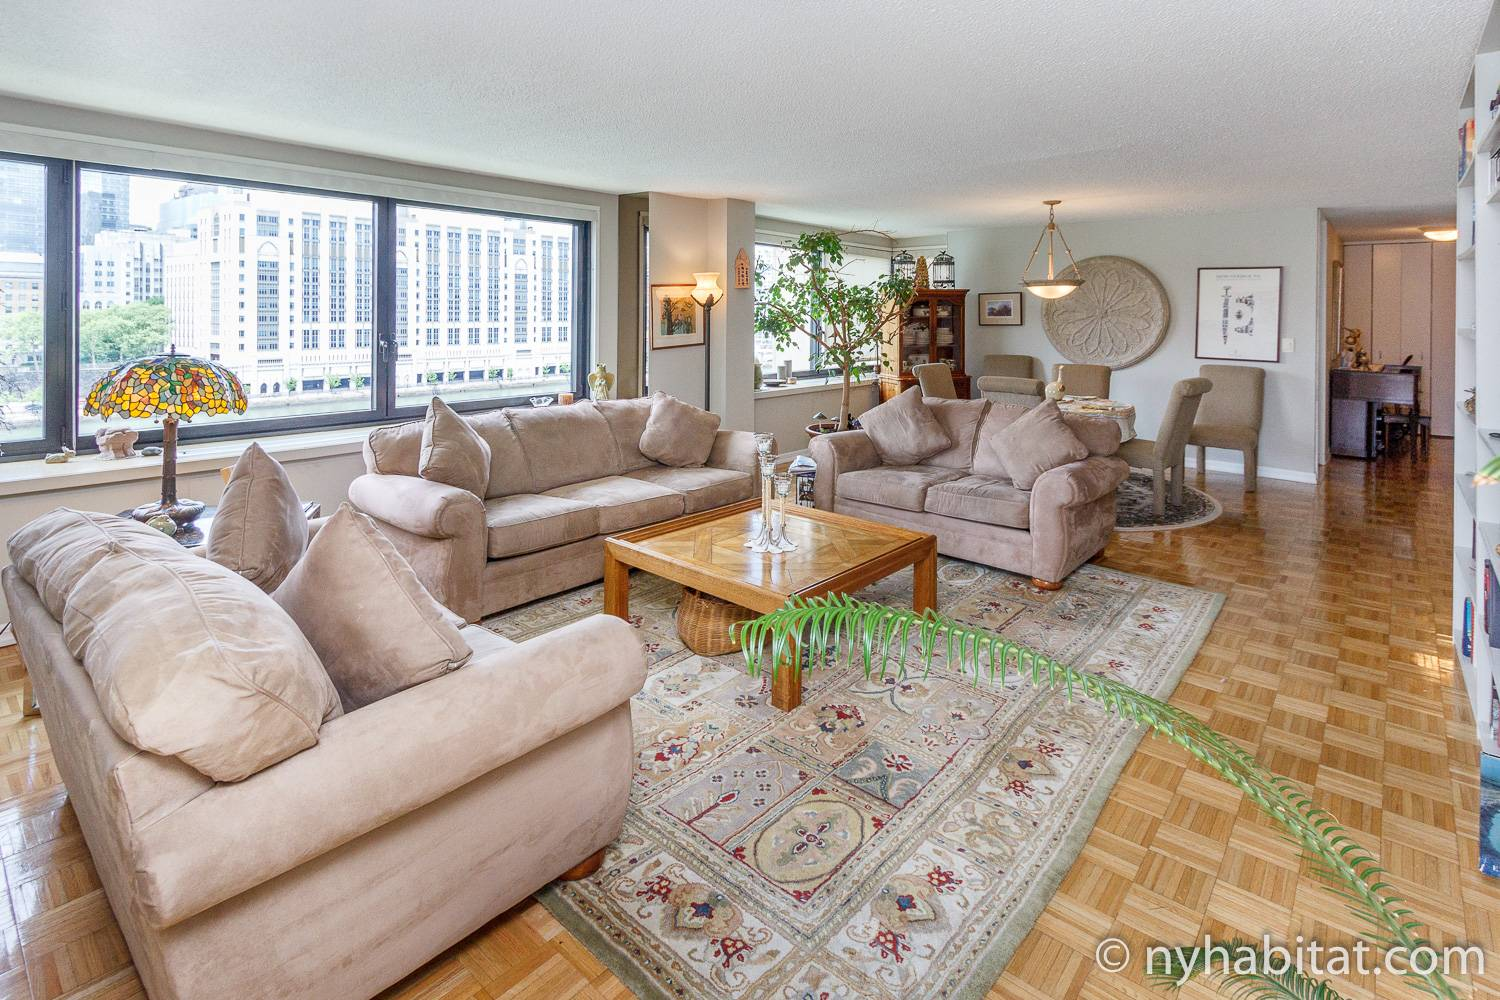 Image of living area of NY-14708 with sofas, coffee table, rug, and dining table and chairs.